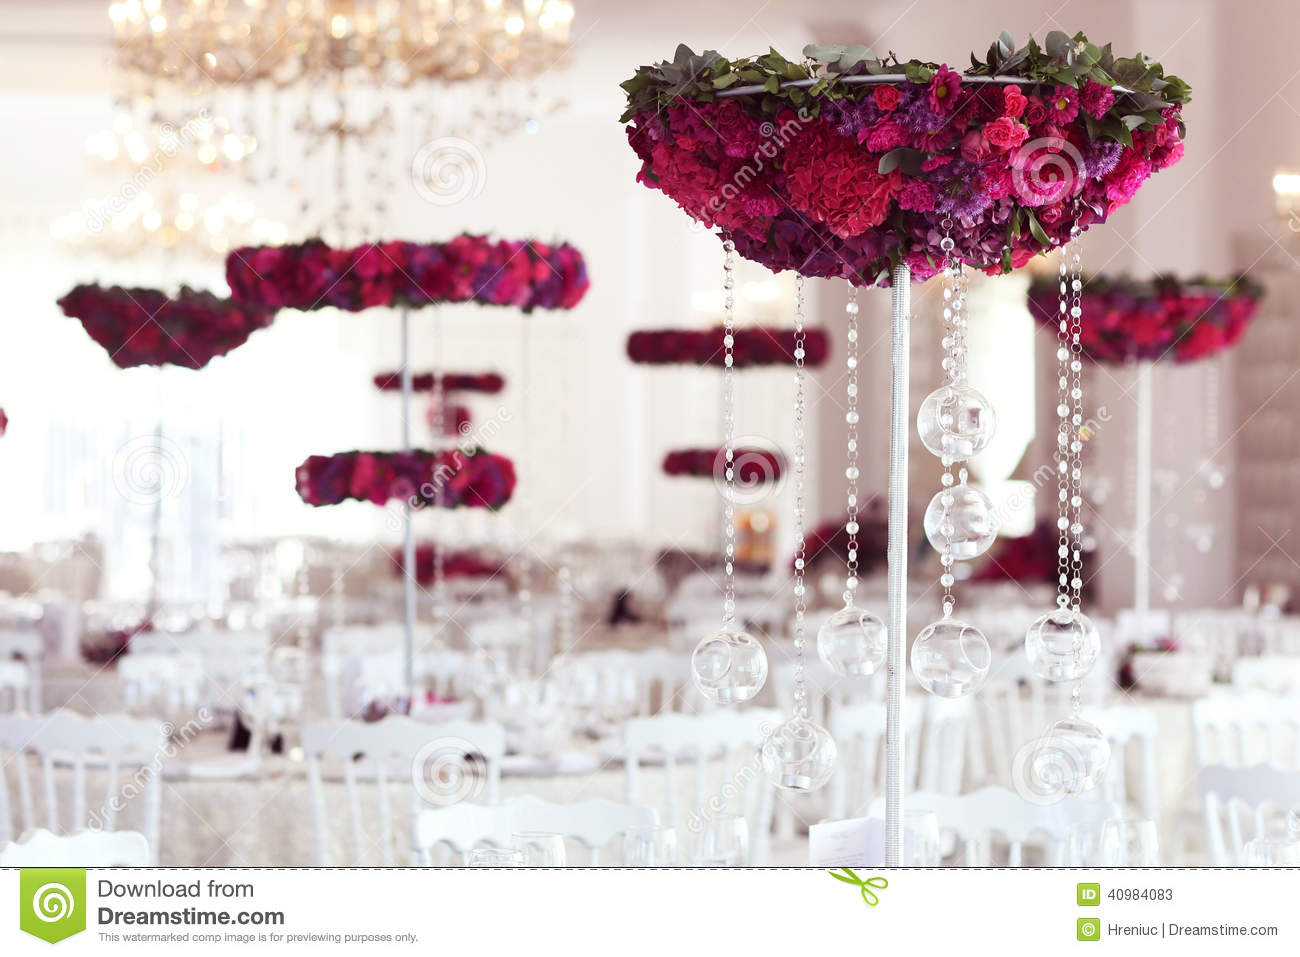 beautiful flowers on wedding table decoration arrangement stock image image of decorate. Black Bedroom Furniture Sets. Home Design Ideas